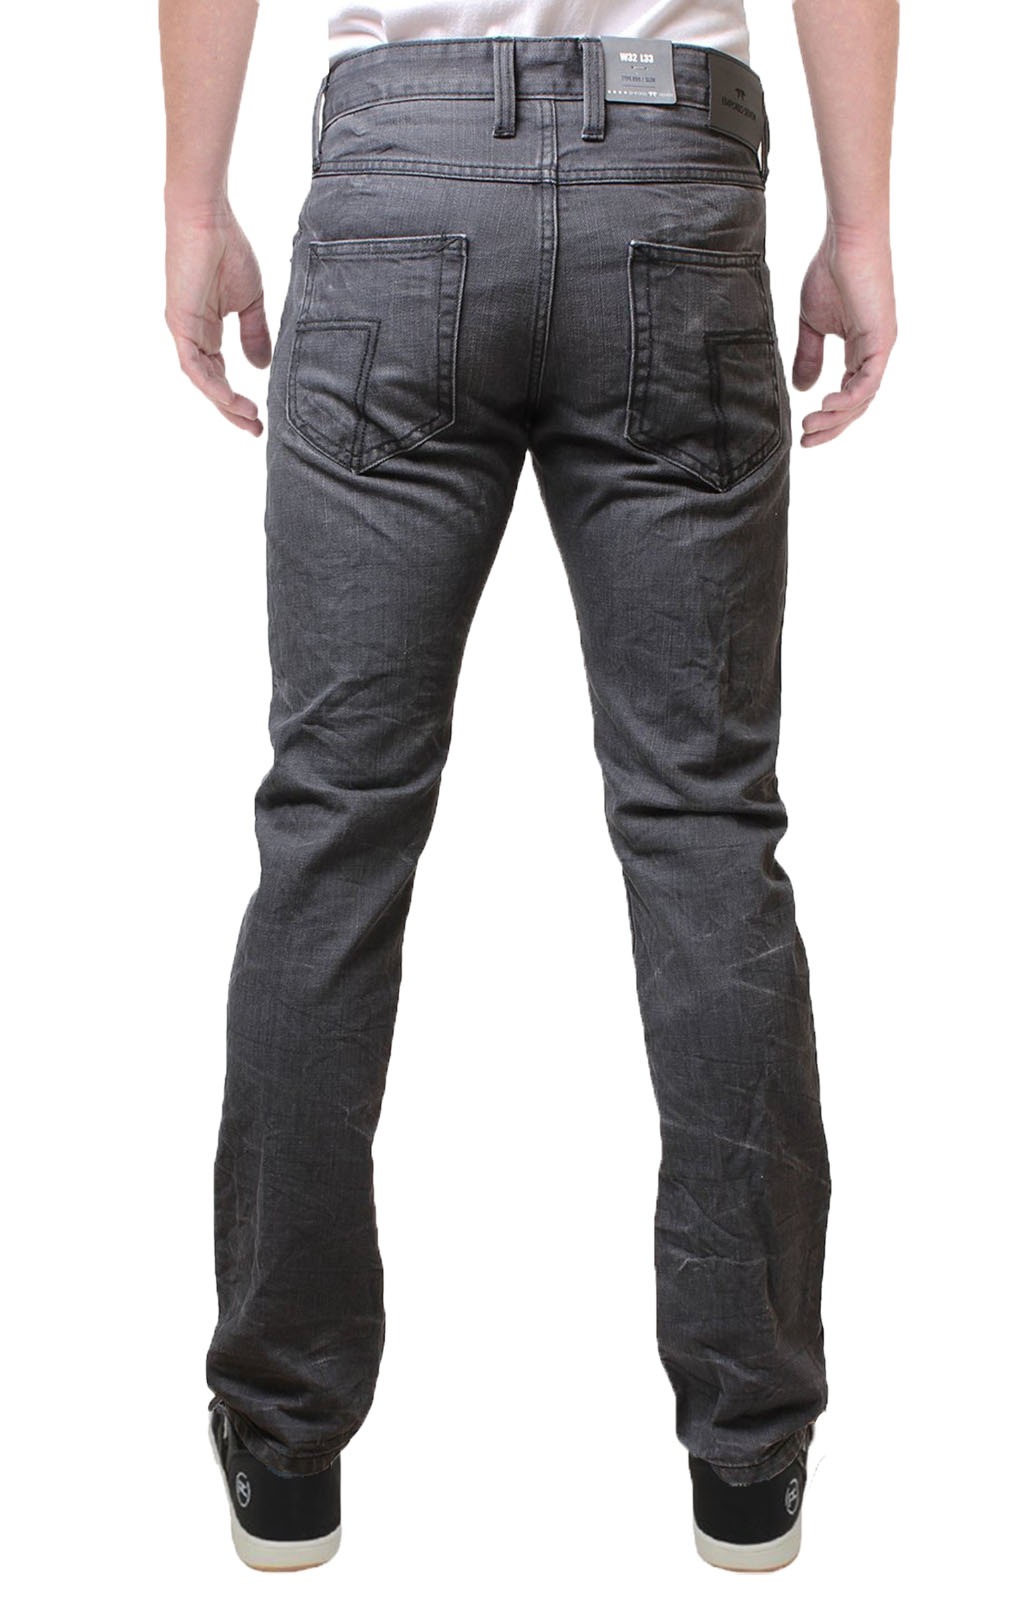 Emporio Seven New Men's Slim Fit Selvedge Jeans Tapered Knight Denim Pants Grey